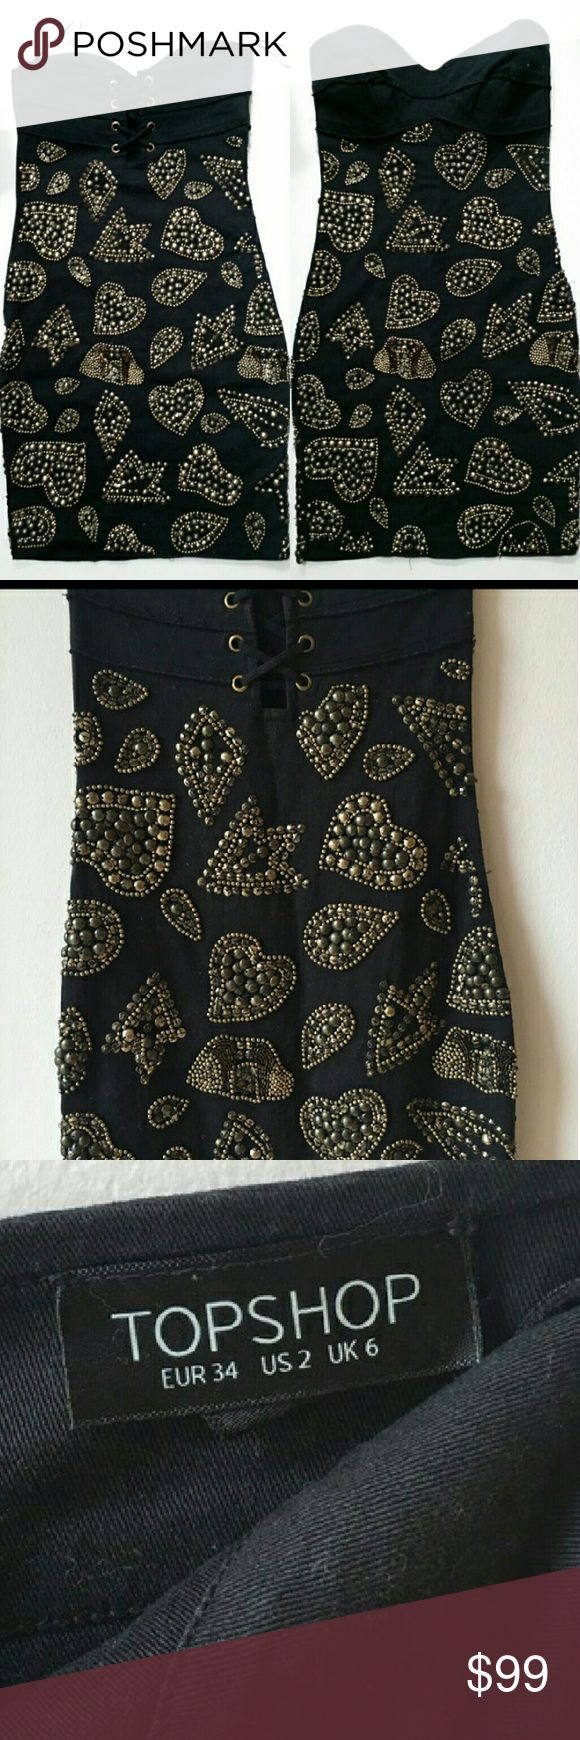 ⤵⤵ TOPSHOP Gold Studs Black Dress Sale! Final Sale Huge Sale!! Ready for a loving home! TOPSHOP Gold Studs Black Dress Sale!Beautiful Gorgeous heavy knit dress. Side zipper. Overall good condition. Still stunning and sexy. Missing stud behind the dress pls take notes picture #4 and it's not obvious at all when you wearing it. Can be fixed up to new owner. Final Sale Item No return please raise question to avoid unnecessary return please.Size 2. Please run your research make sure it fits u…